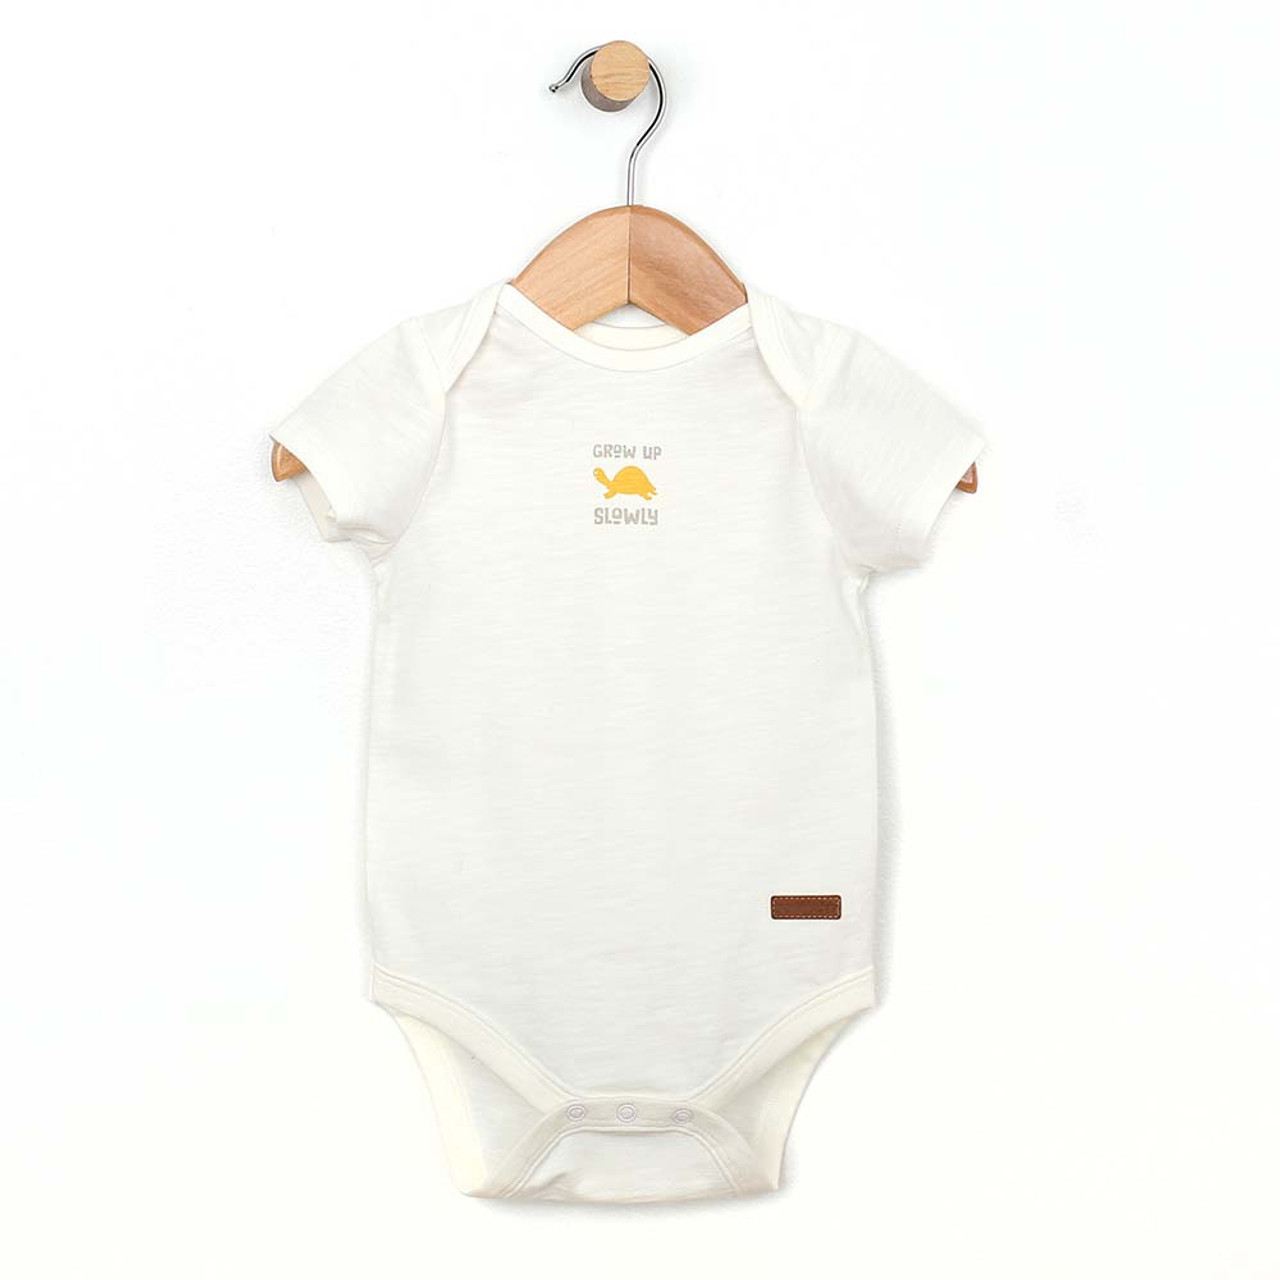 702c8996a Front view of white onesie/body suit/ one piece for boy and girl babies